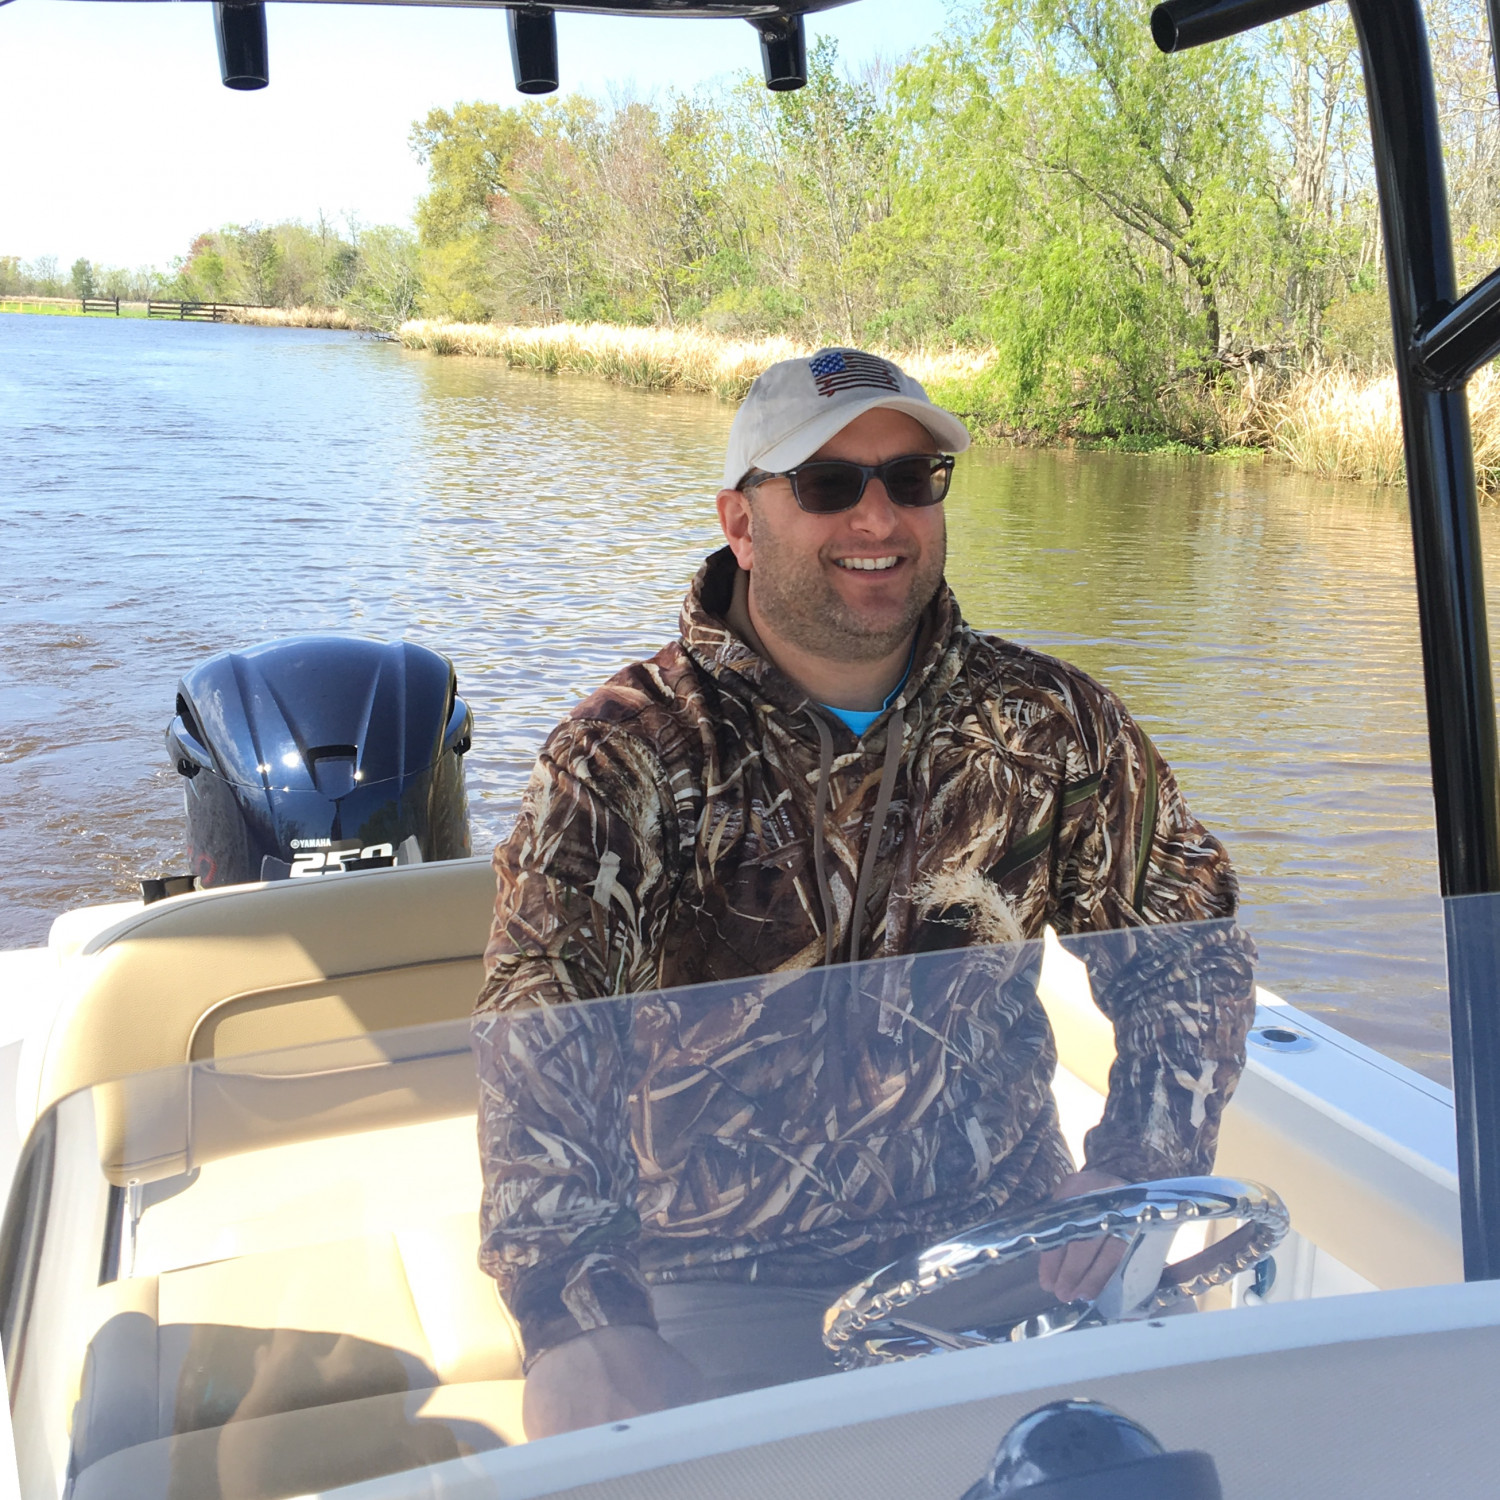 Title: Sunday Cruise - On board their Sportsman Open 232 Center Console - Location: Laffite, La. Participating in the Photo Contest #SportsmanMarch2018